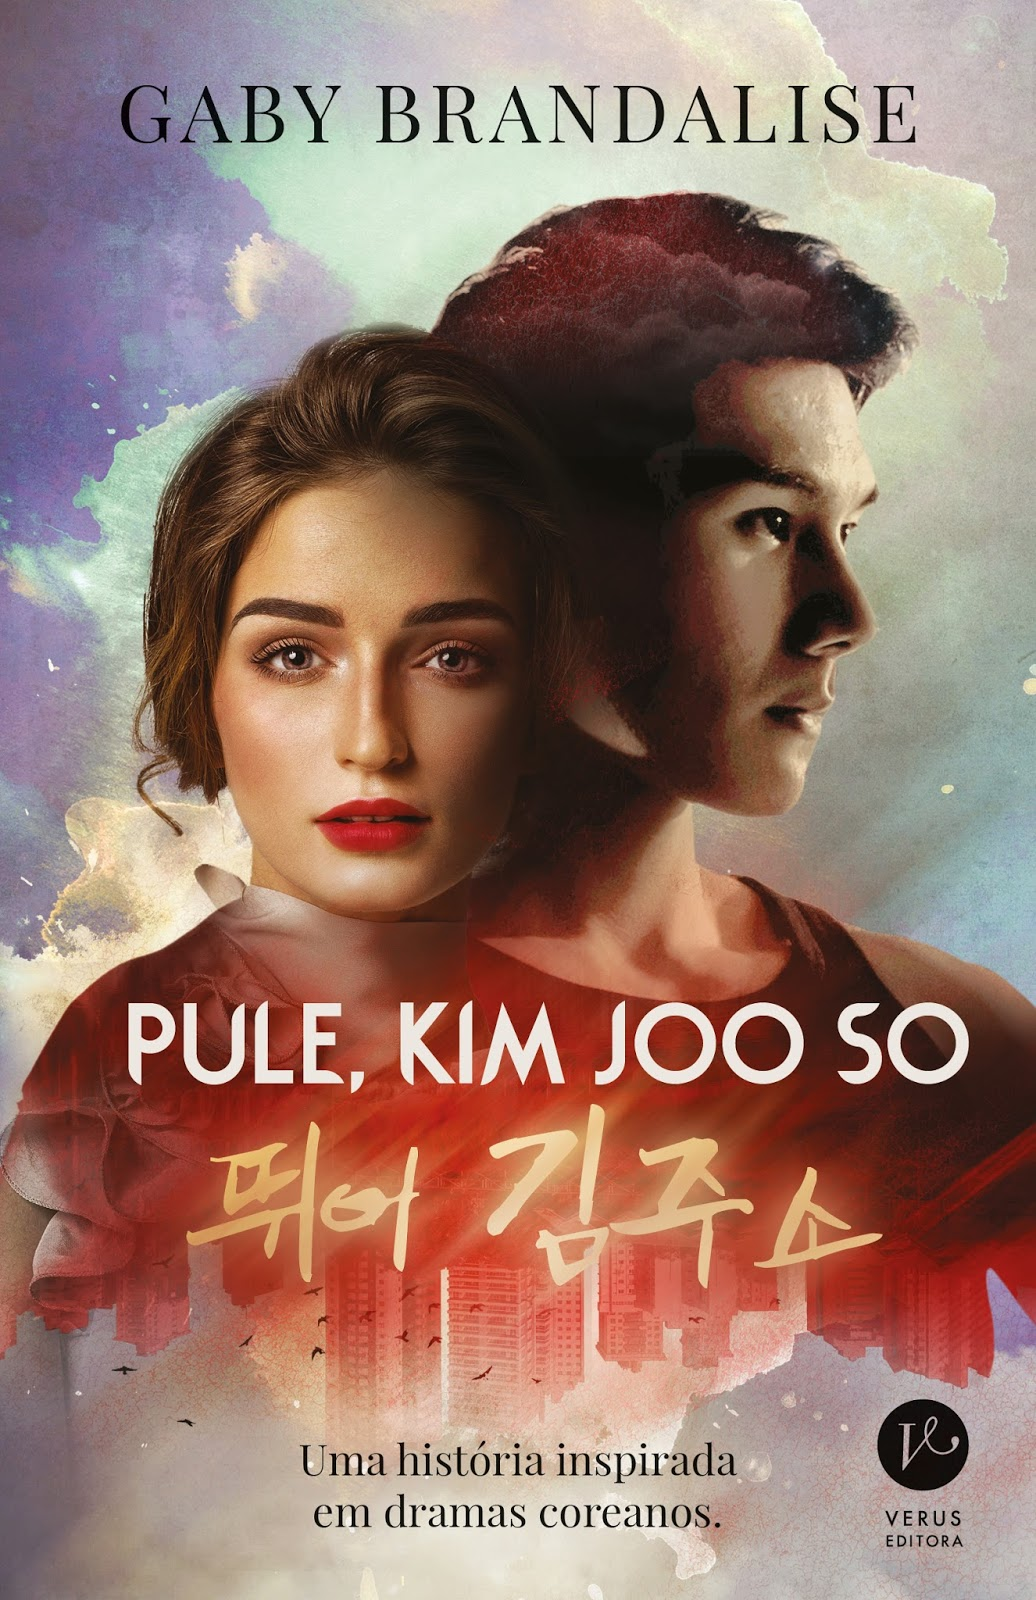 Pule, Kim Joo So